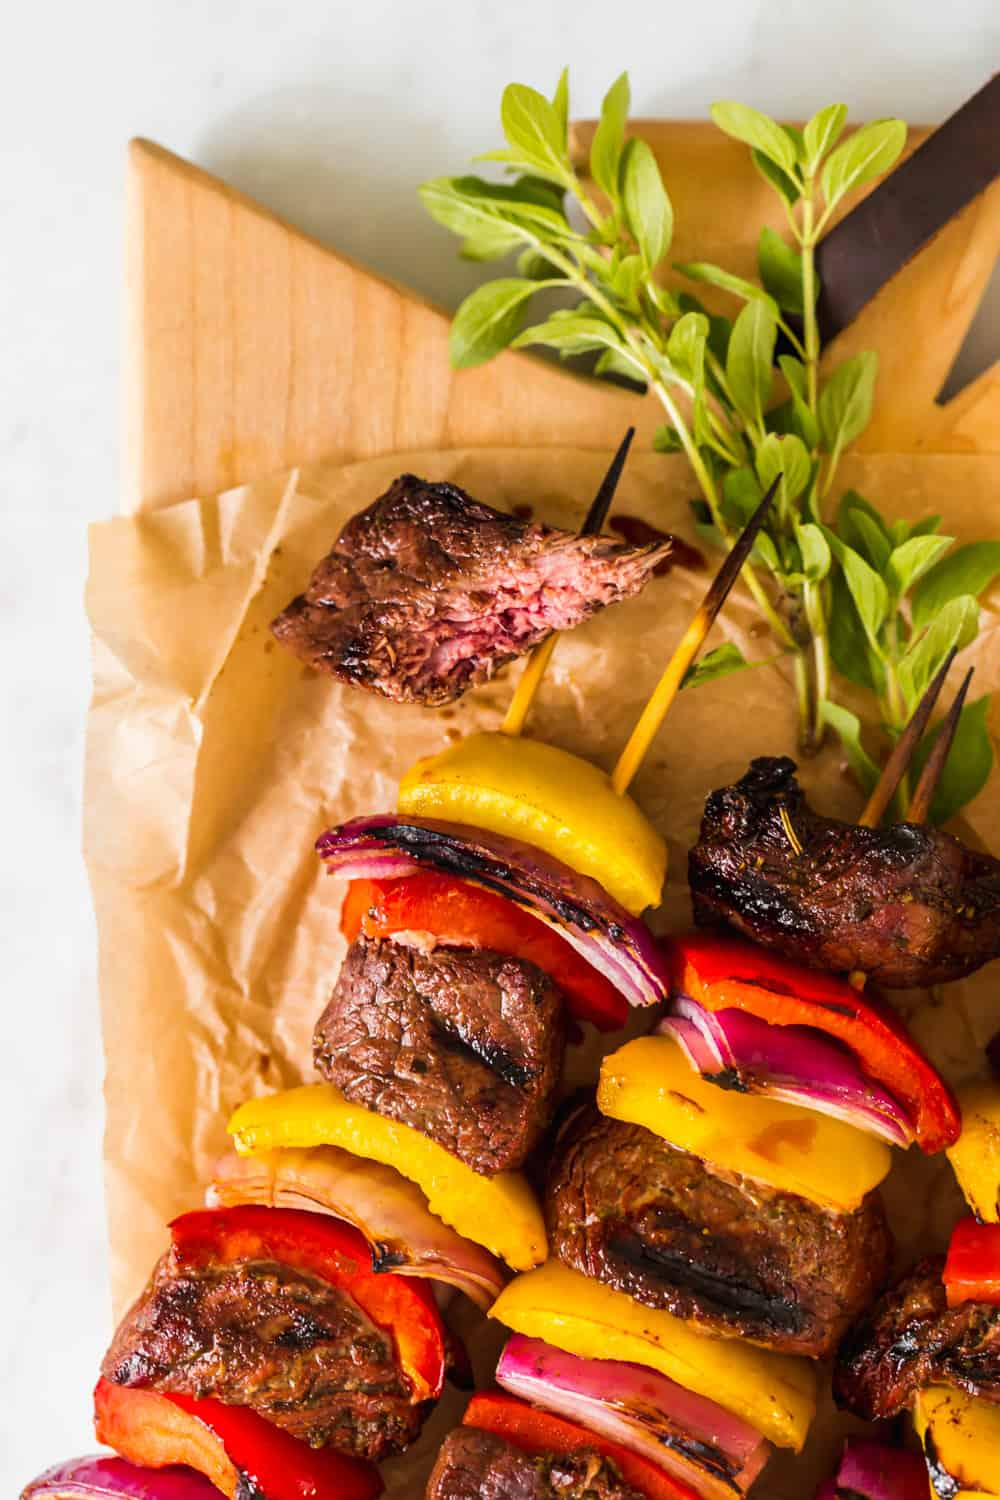 close up on a small piece of cut steak next to grilled beef kabobs